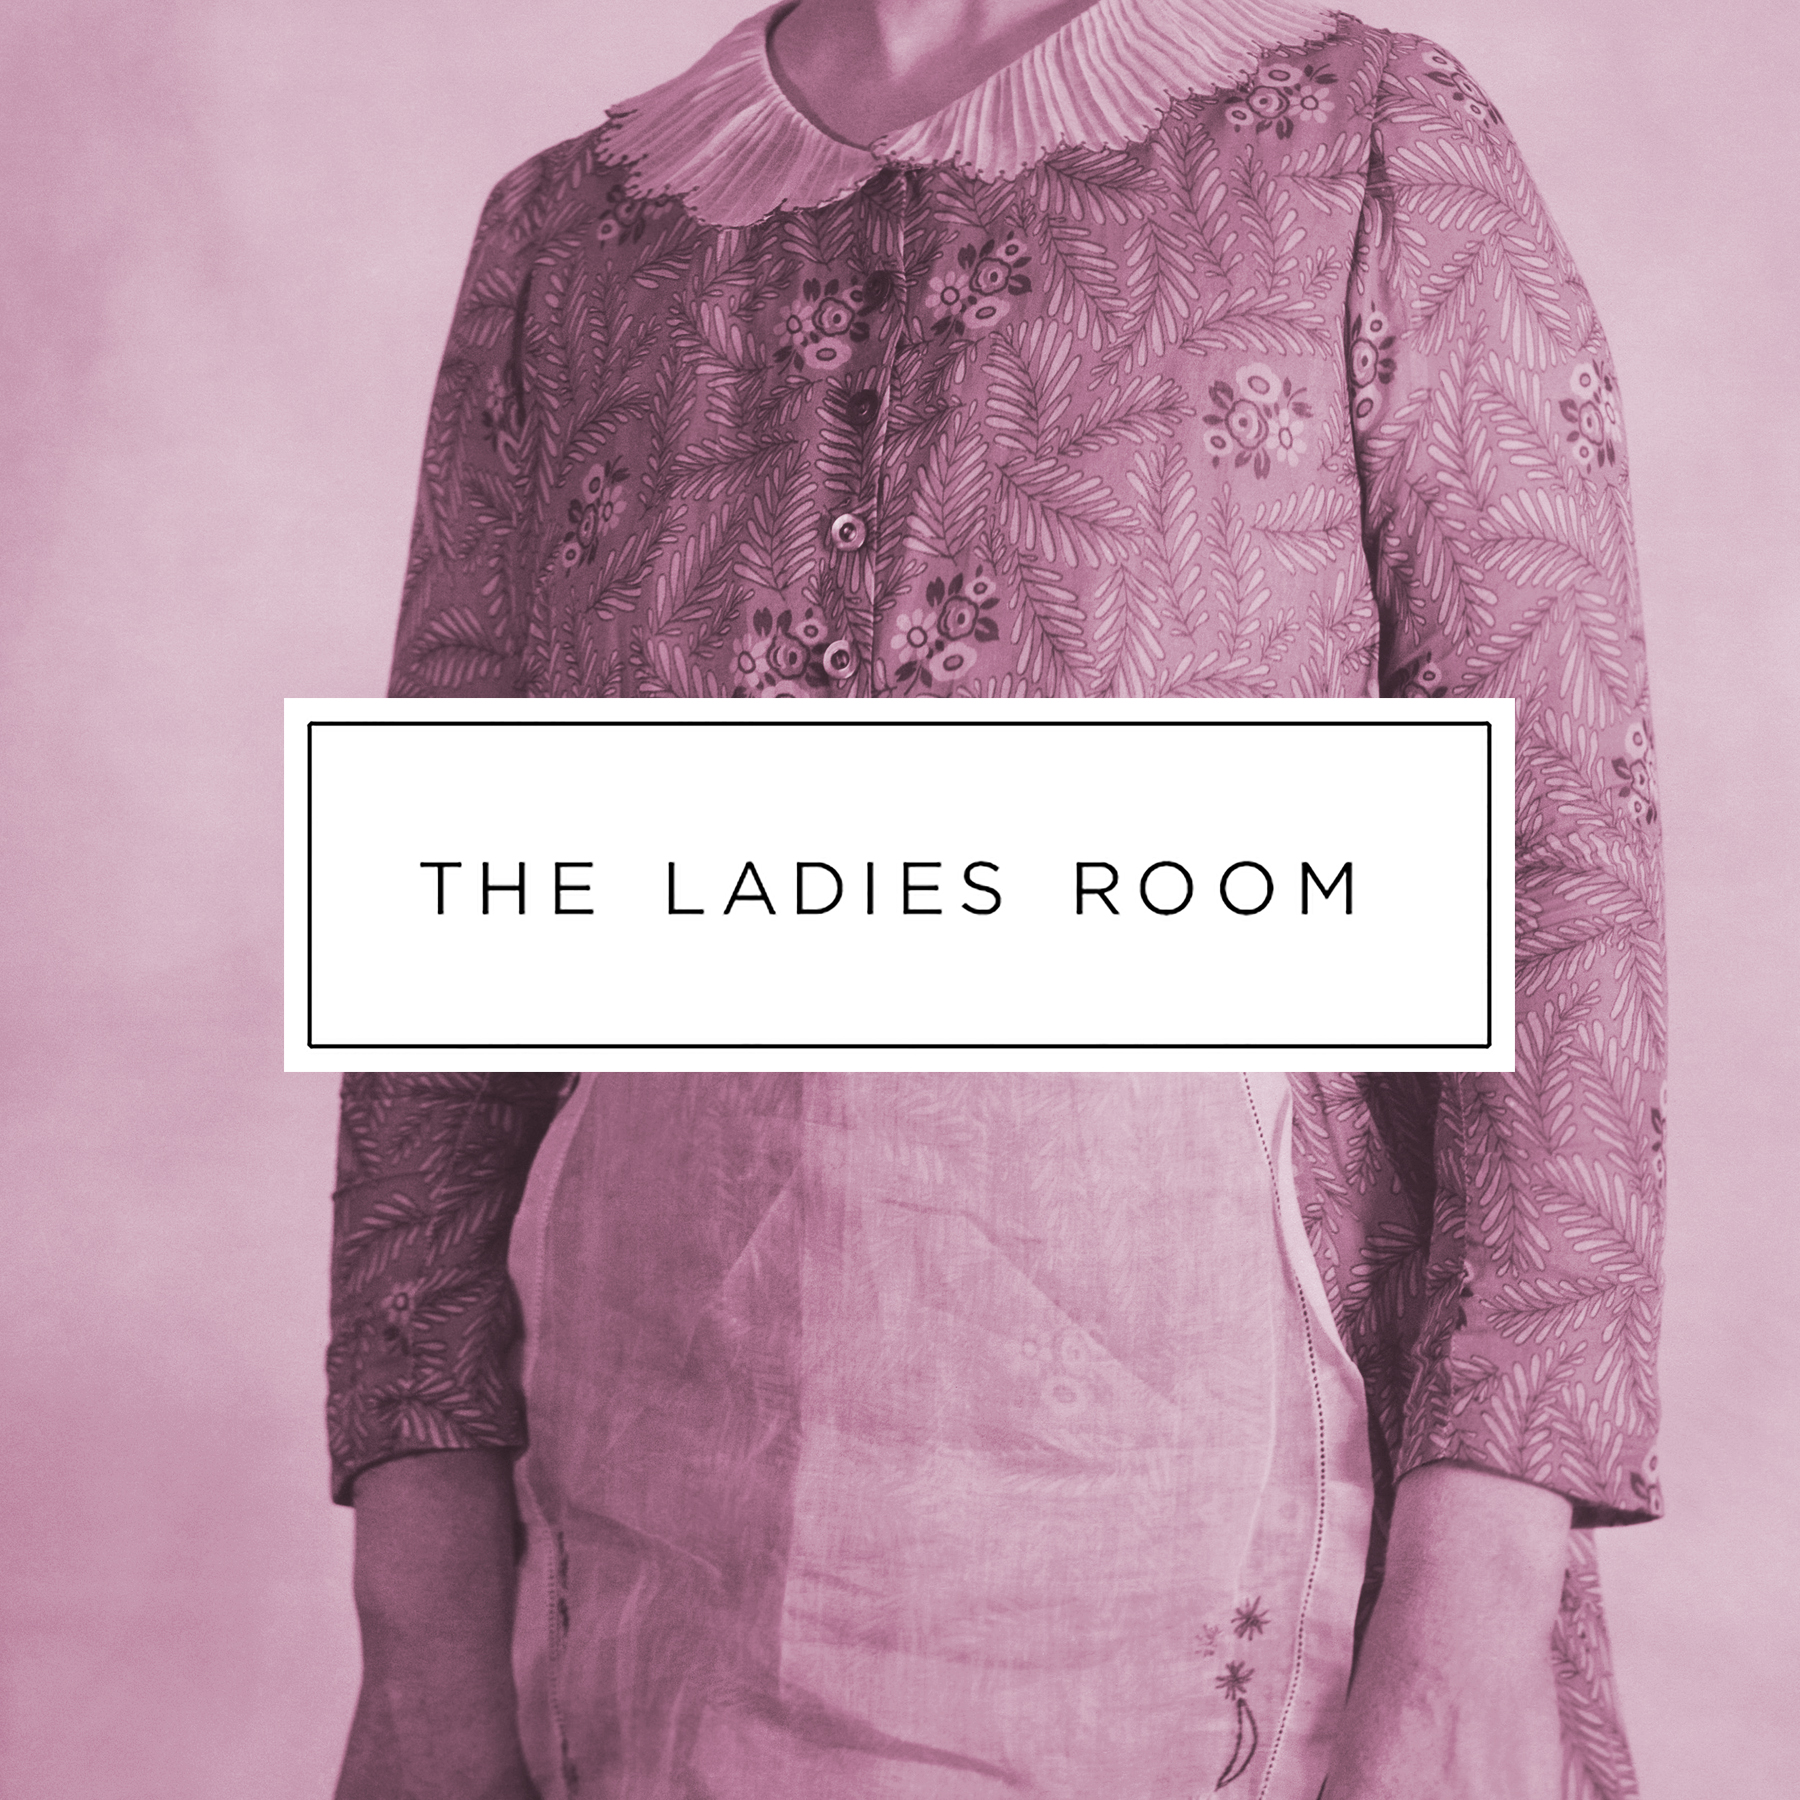 LadiesRoom_Advert_FLat.jpg